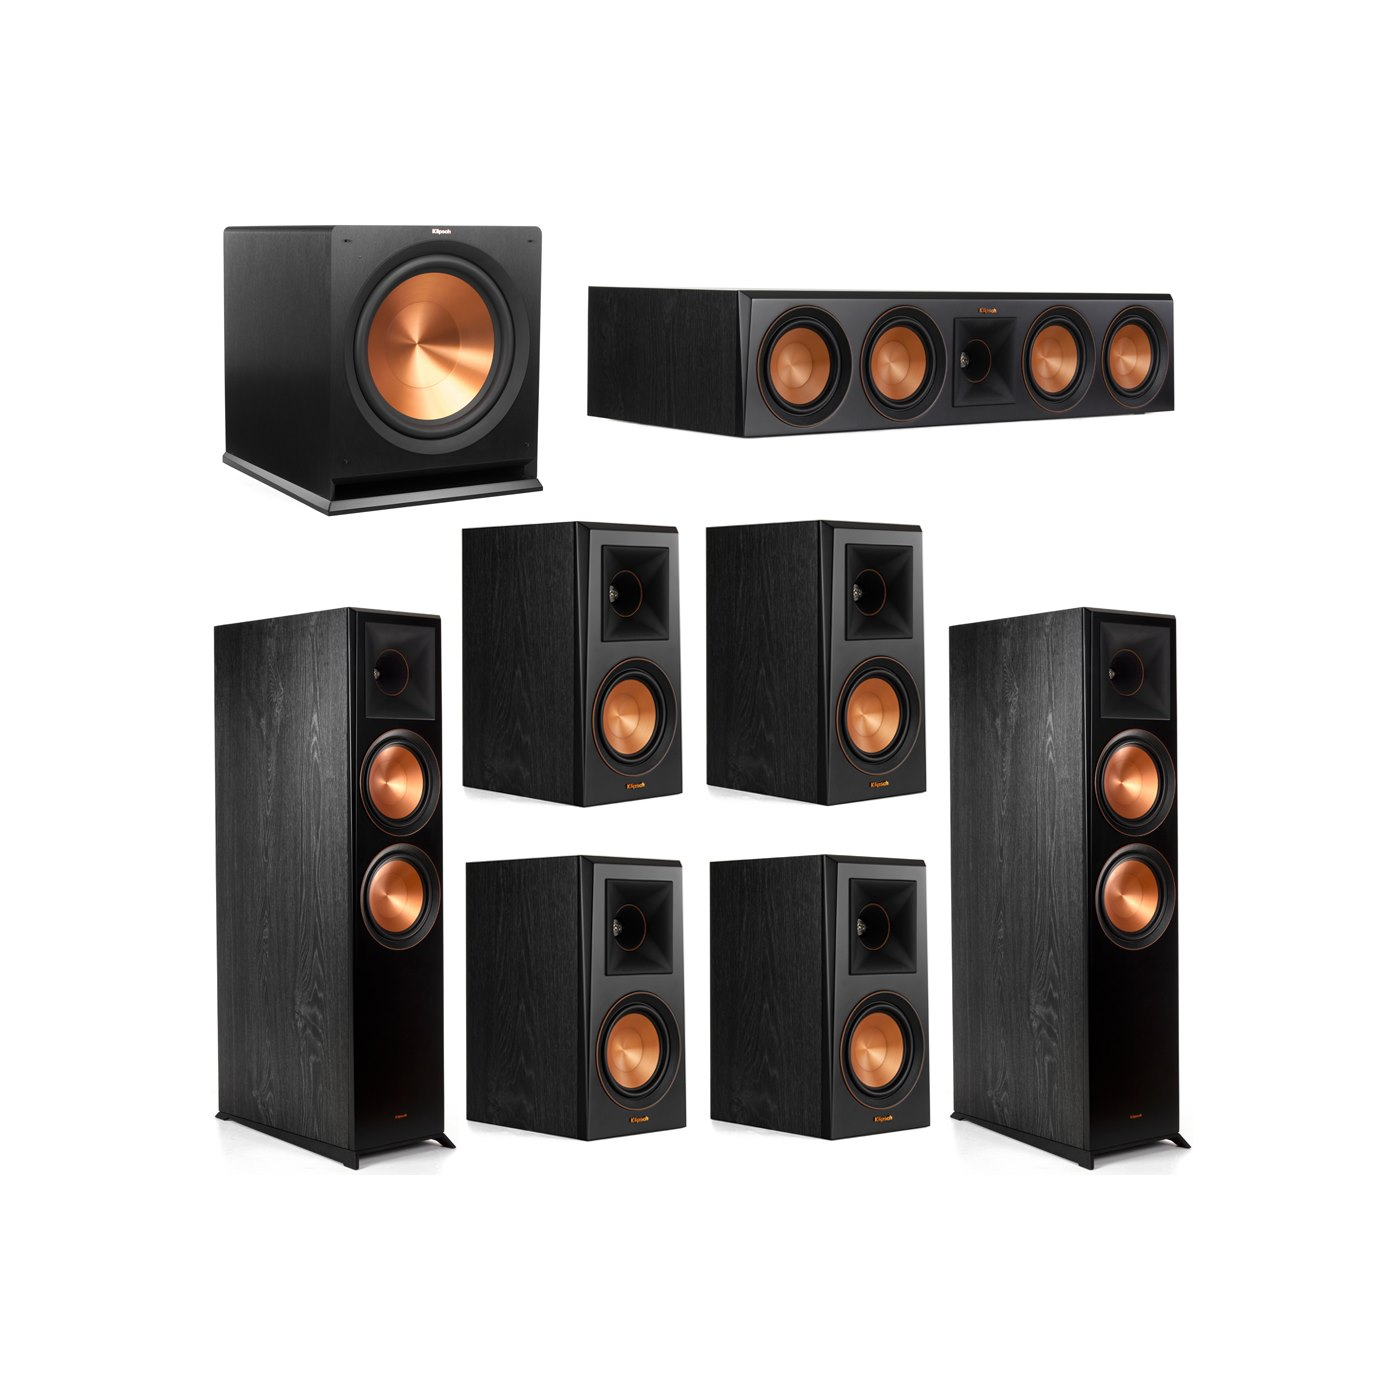 Klipsch 7.1 System with 2 RP-8000F Floorstanding Speakers, 1 Klipsch RP-504C Center Speaker, 4 Klipsch RP-500M Surround Speakers, 1 Klipsch R-115SW Subwoofer